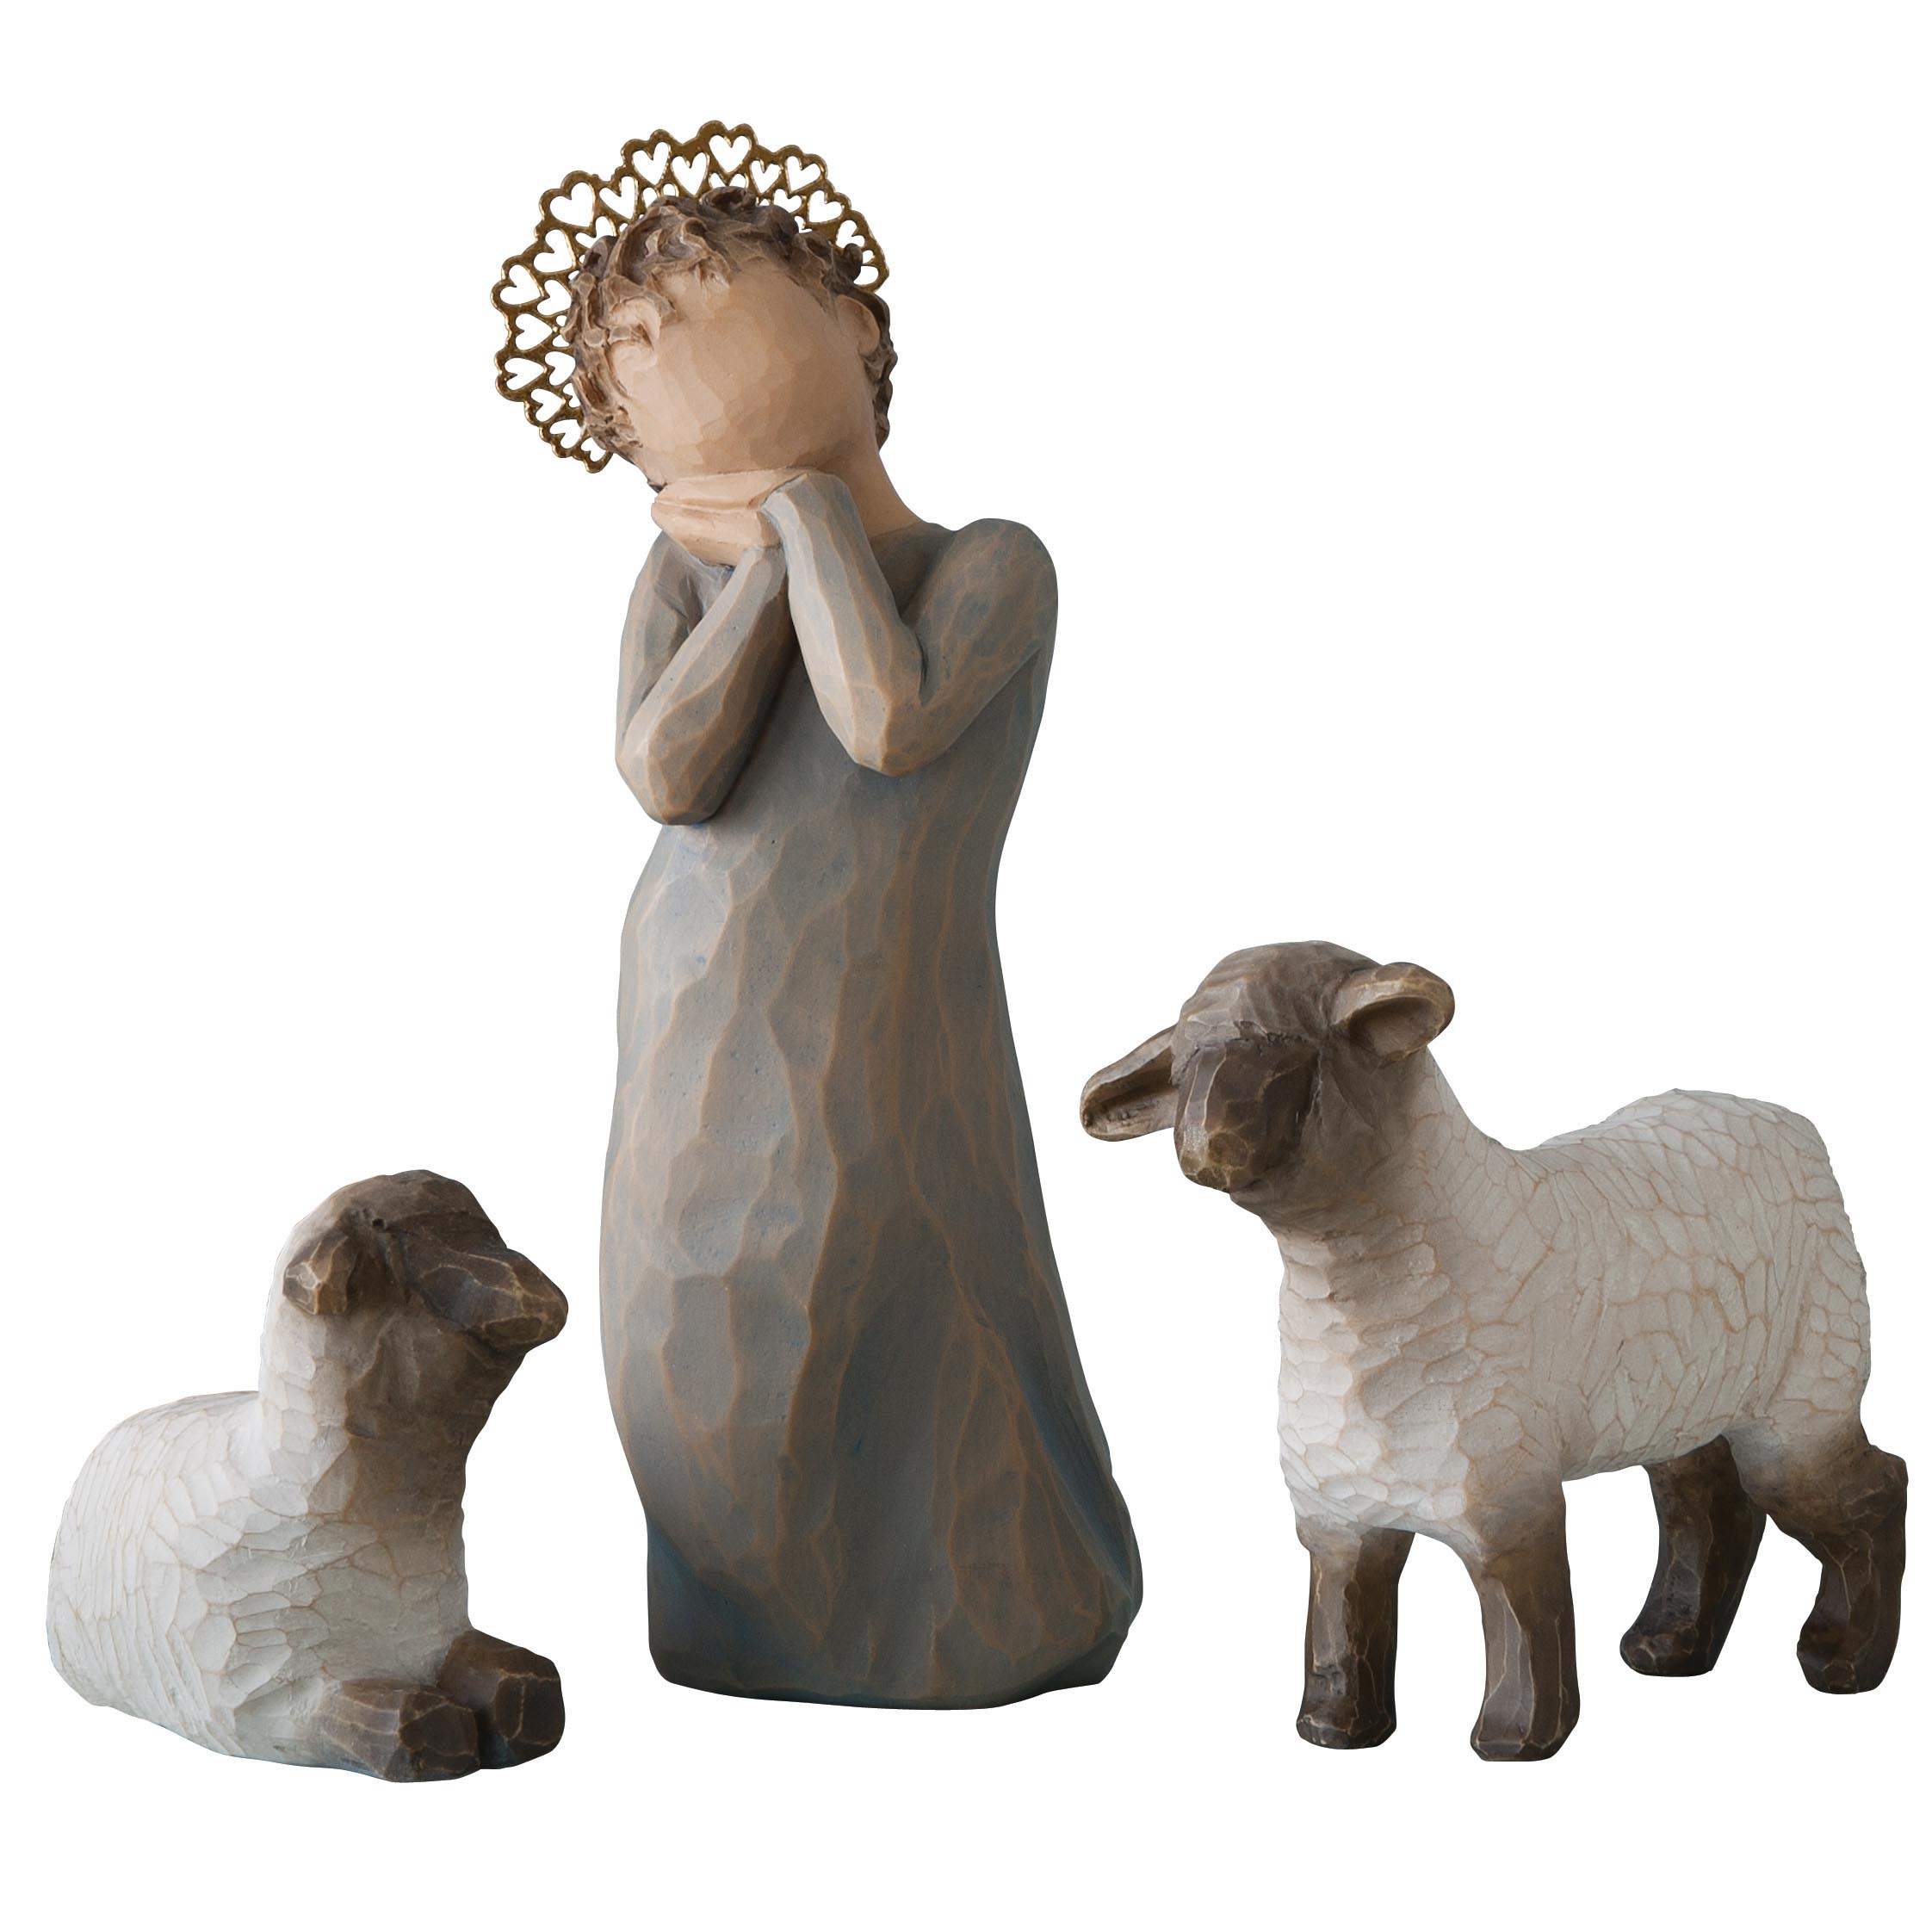 Little Shepherdess / Kleine Schafhirtin (26442)